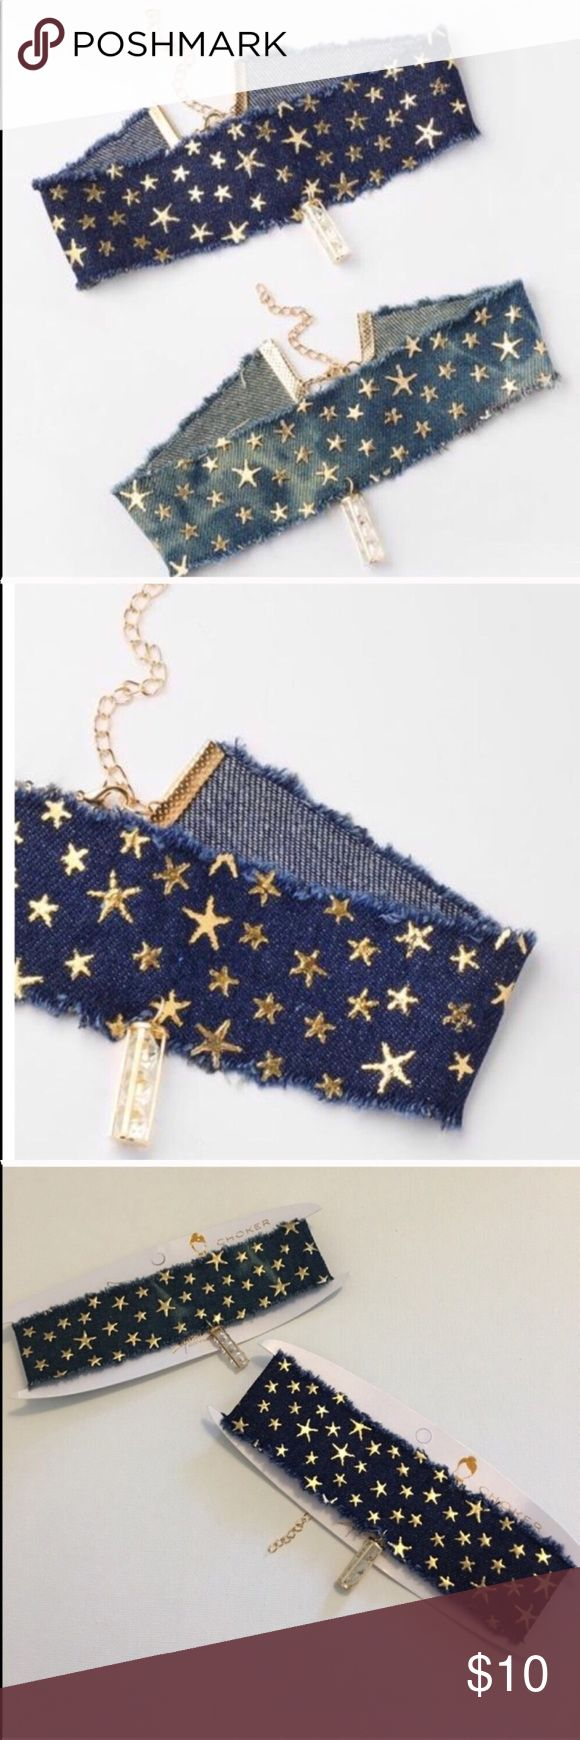 • Star Denim Gemstone Choker • Super trendy and fun wide denim choker with all-over gold star pattern and unique triple gemstone pendant. A cool finishing touch to a stylish casual or going out look! Features adjustable chain and lobster clasp closure • NWOT Boutique • listing is for 1 Choker  • Offers Welcome • Bundle Discounts  • Suggested User • Fast Shipper Jewelry Necklaces